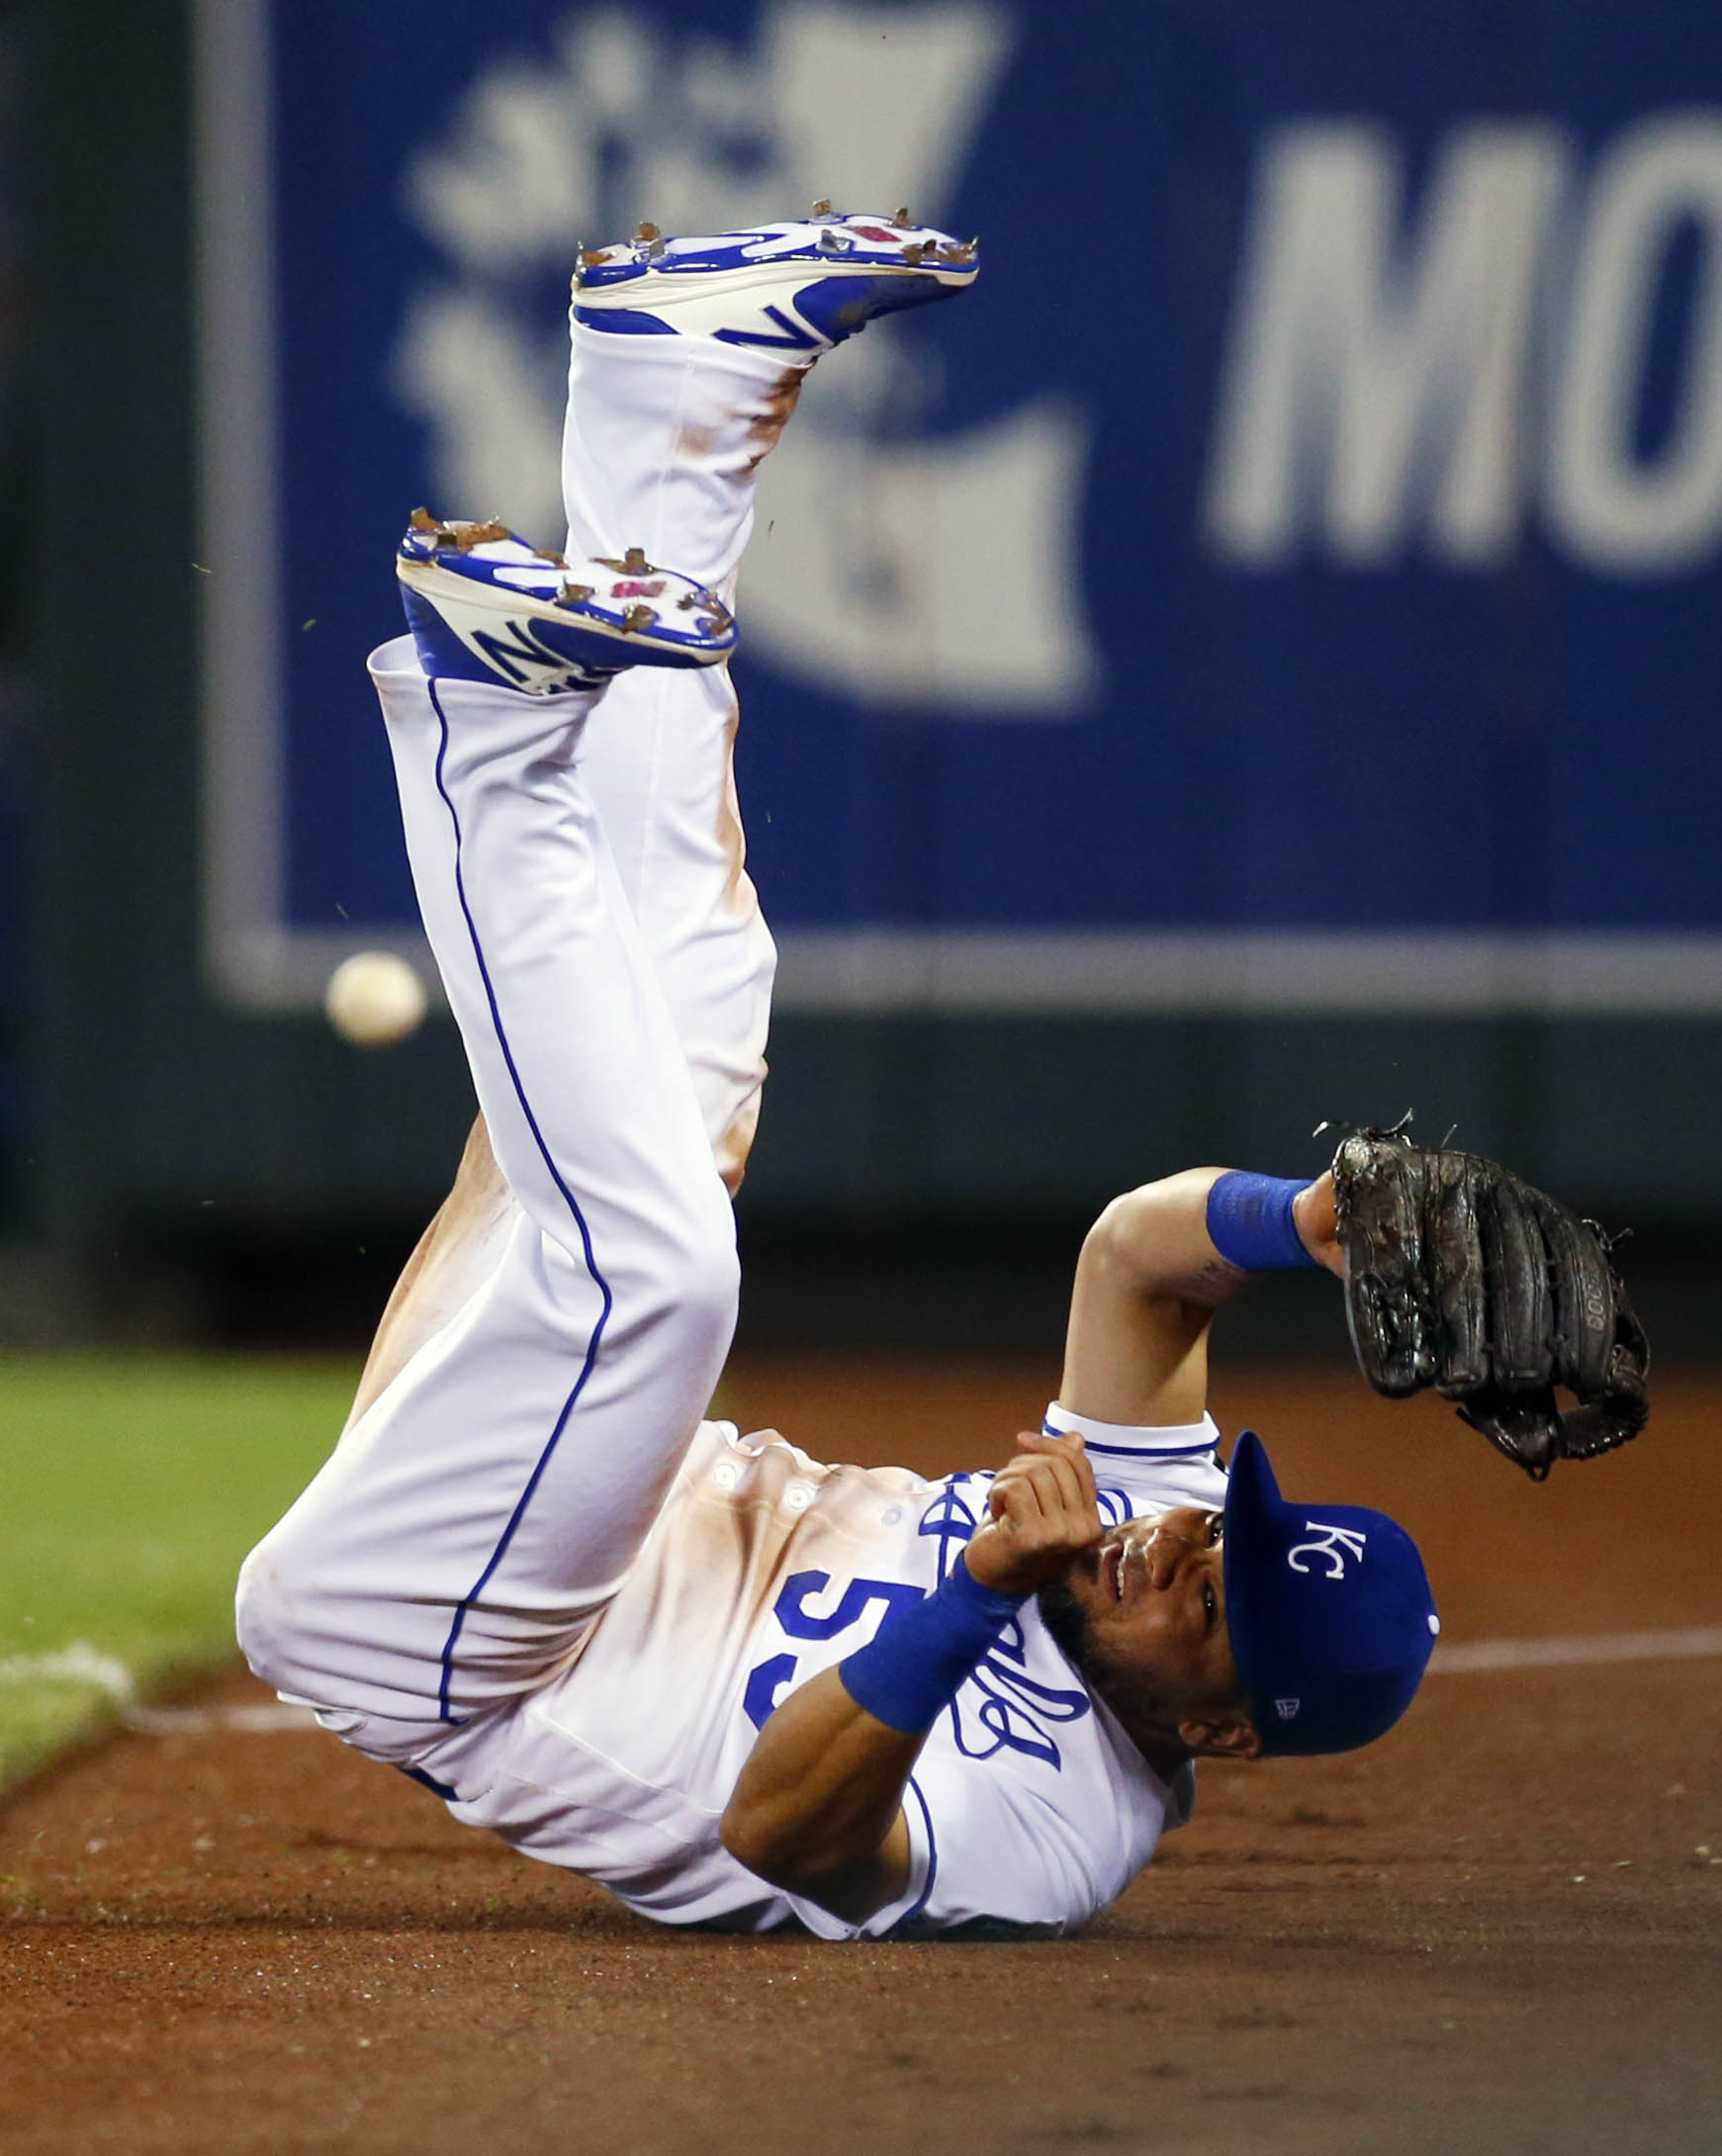 Aug 22, 2017; Kansas City, MO, USA; Kansas City Royals right fielder Melky Cabrera (53) makes a diving attempt at a base hit in the ninth inning of the game against the Colorado Rockies at Kauffman Stadium. Mandatory Credit: Jay Biggerstaff-USA TODAY Sports